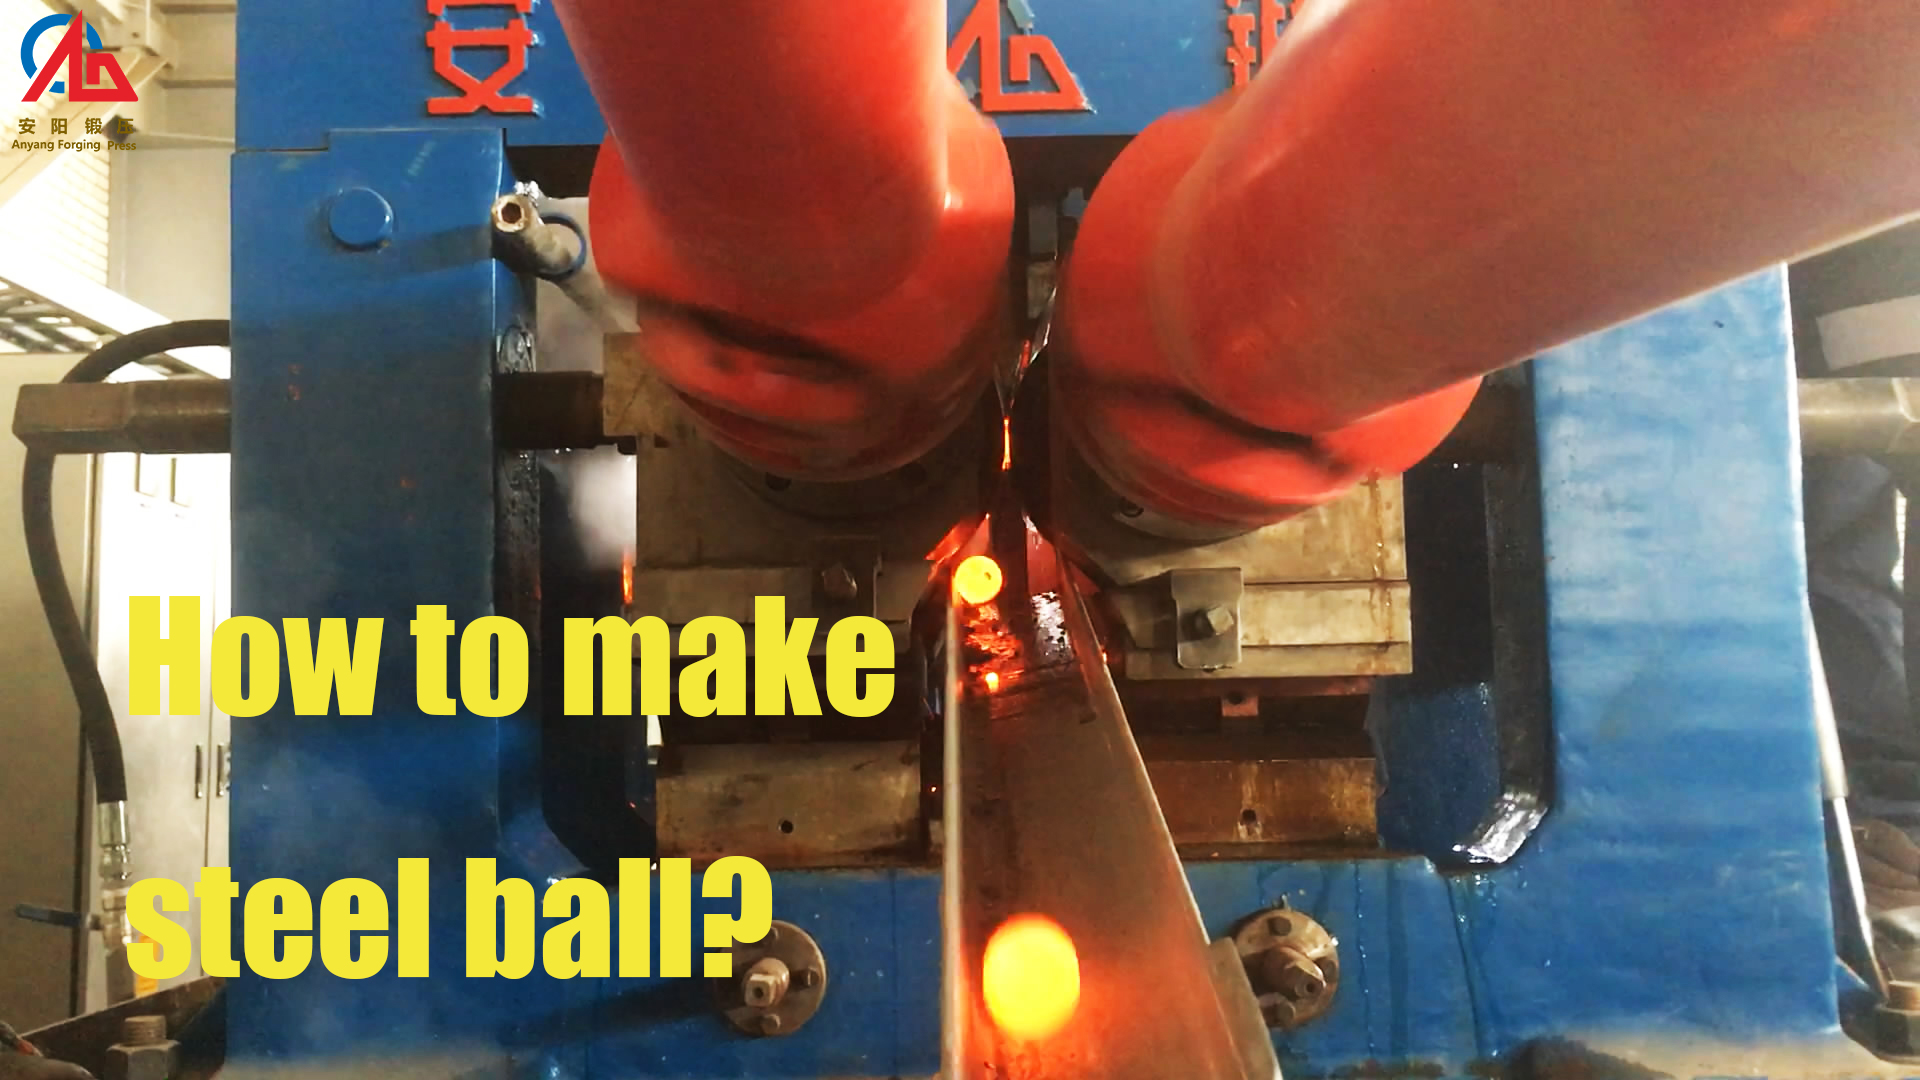 steel ball, skew rolling mill, automatic production line, make steel balls